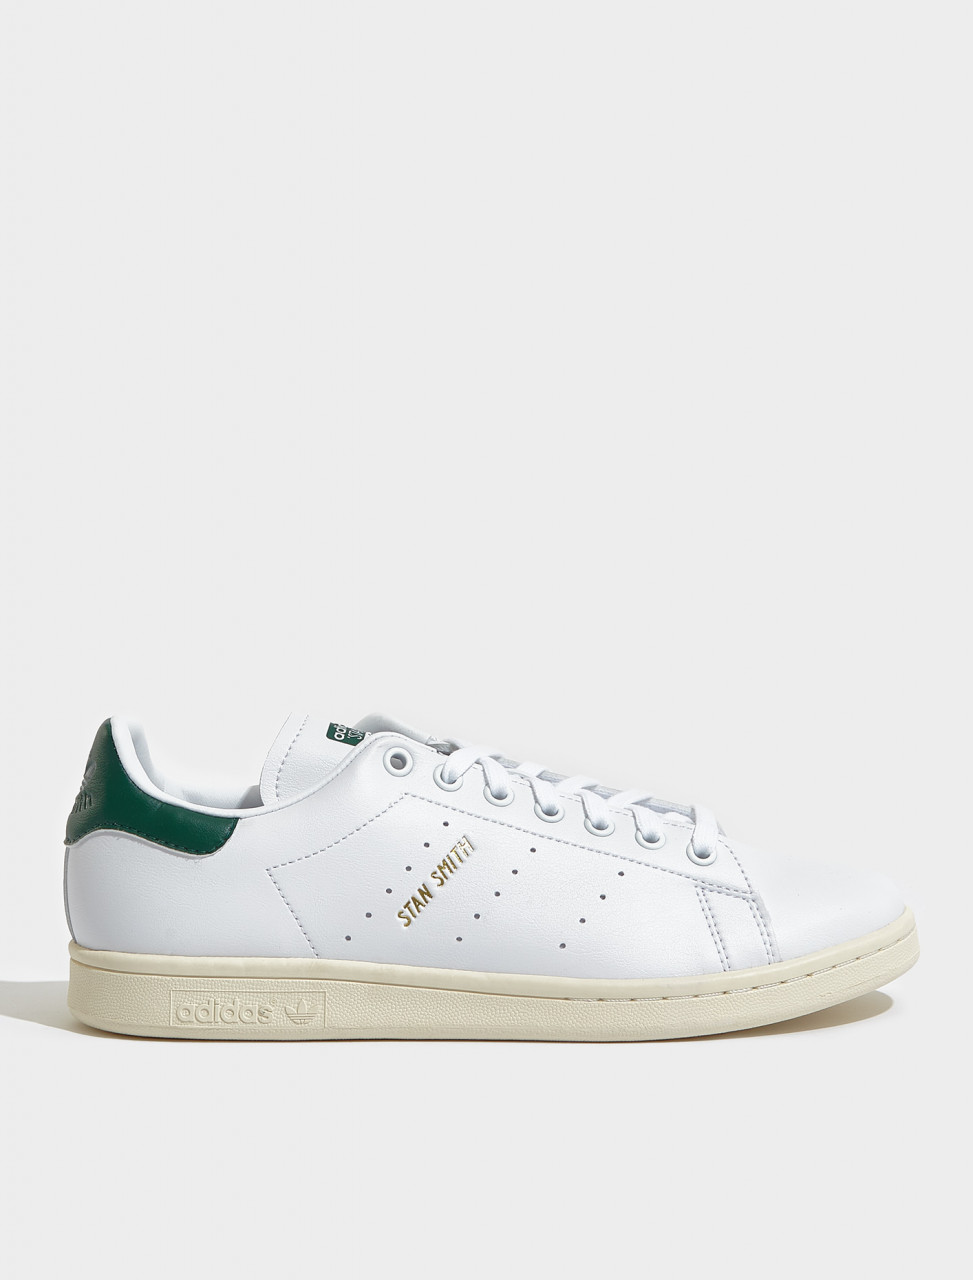 FX5522 ADIDAS ORIGINALS IN WHITE AND GREEN